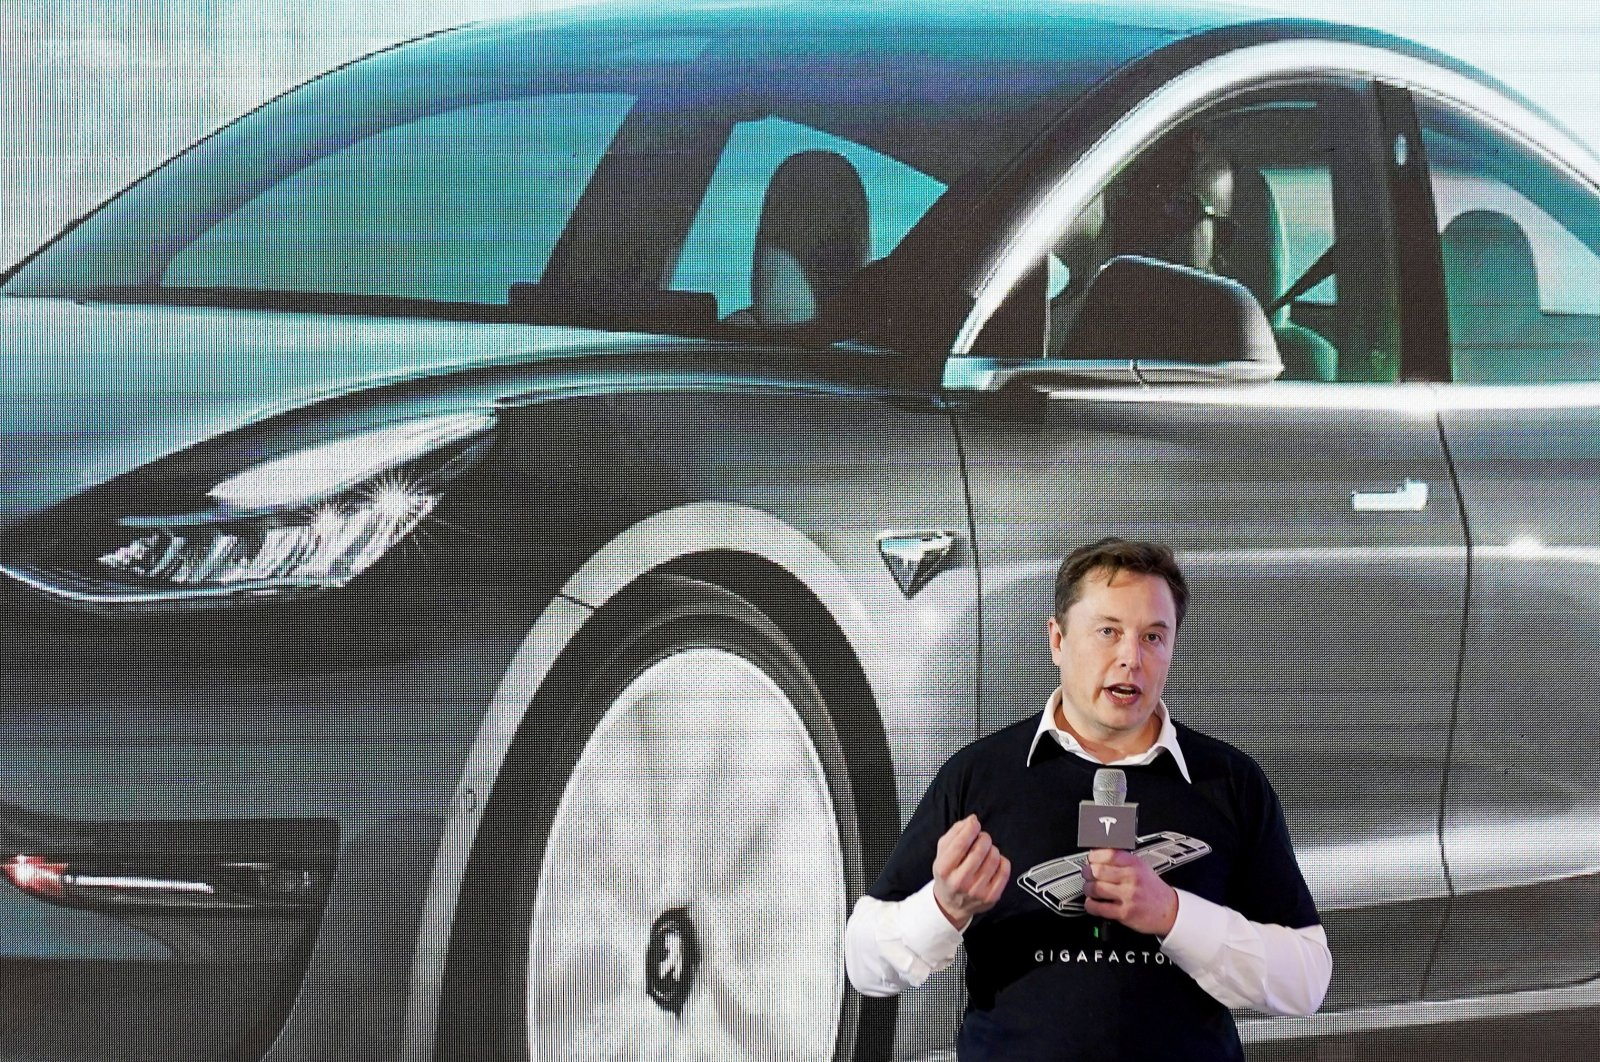 Tesla Inc. CEO Elon Musk speaks onstage during a delivery event for Chinese-made Tesla Model 3 cars at its factory in Shanghai, China, Jan. 7, 2020. (Reuters Photo)